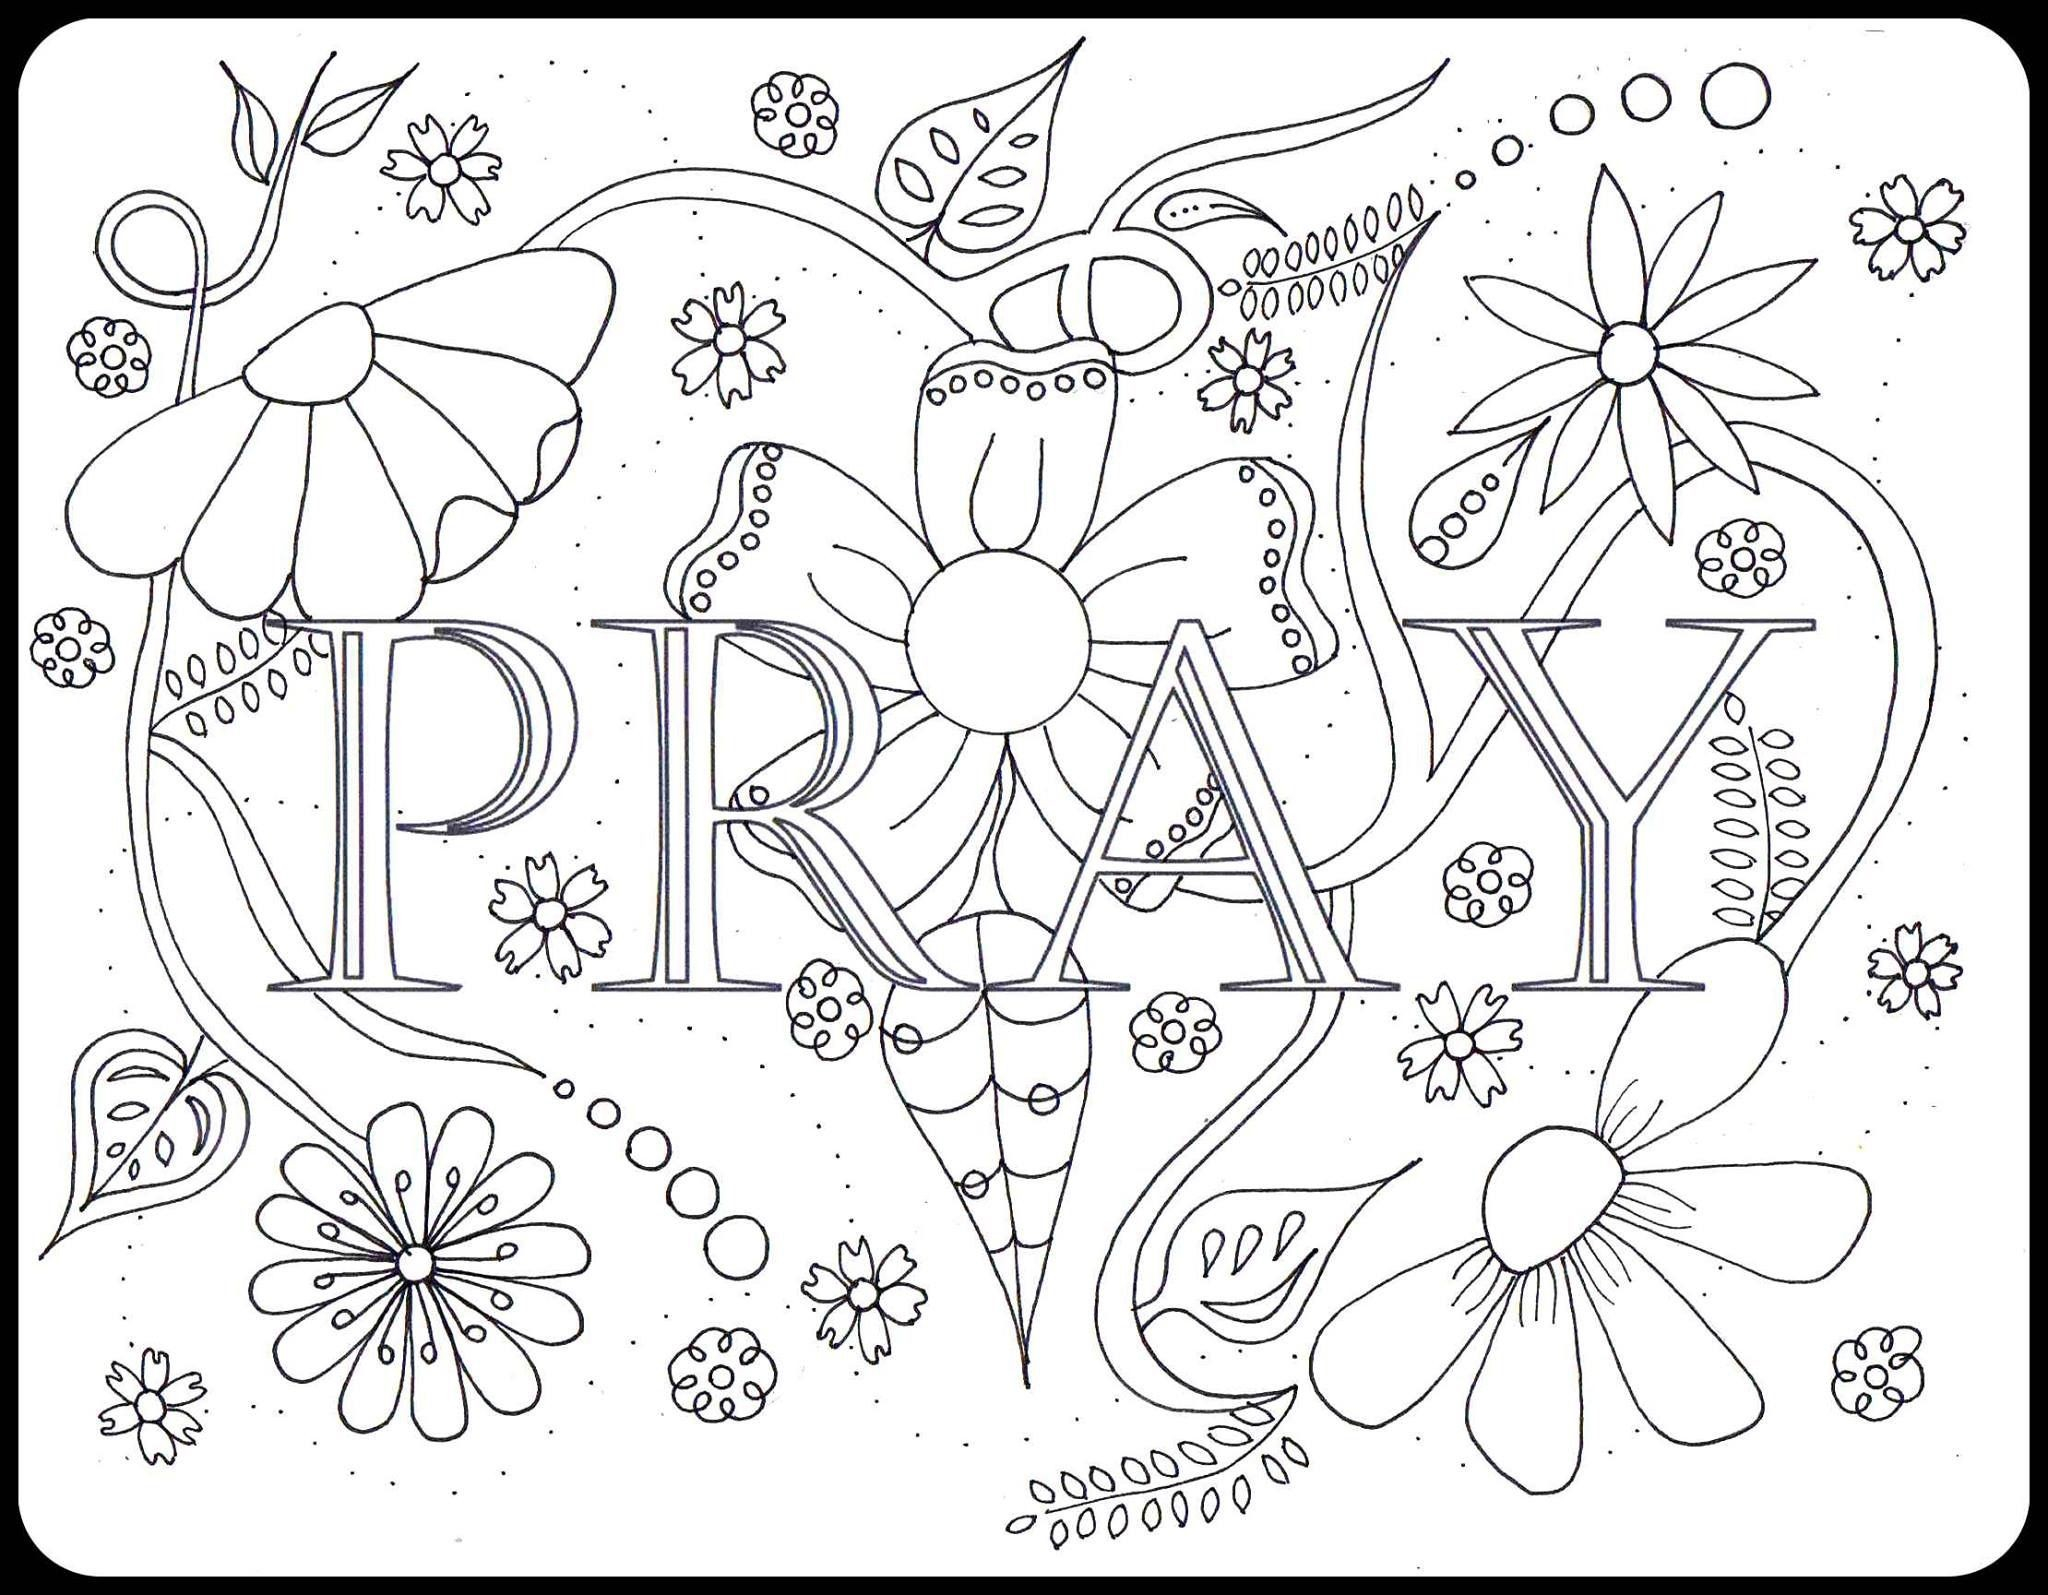 mothers day free coloring pages Download-Free Mothers Day Coloring Pages Mothers Day Coloring Pages Lds Fresh the First Vision Joseph Sees 18-n